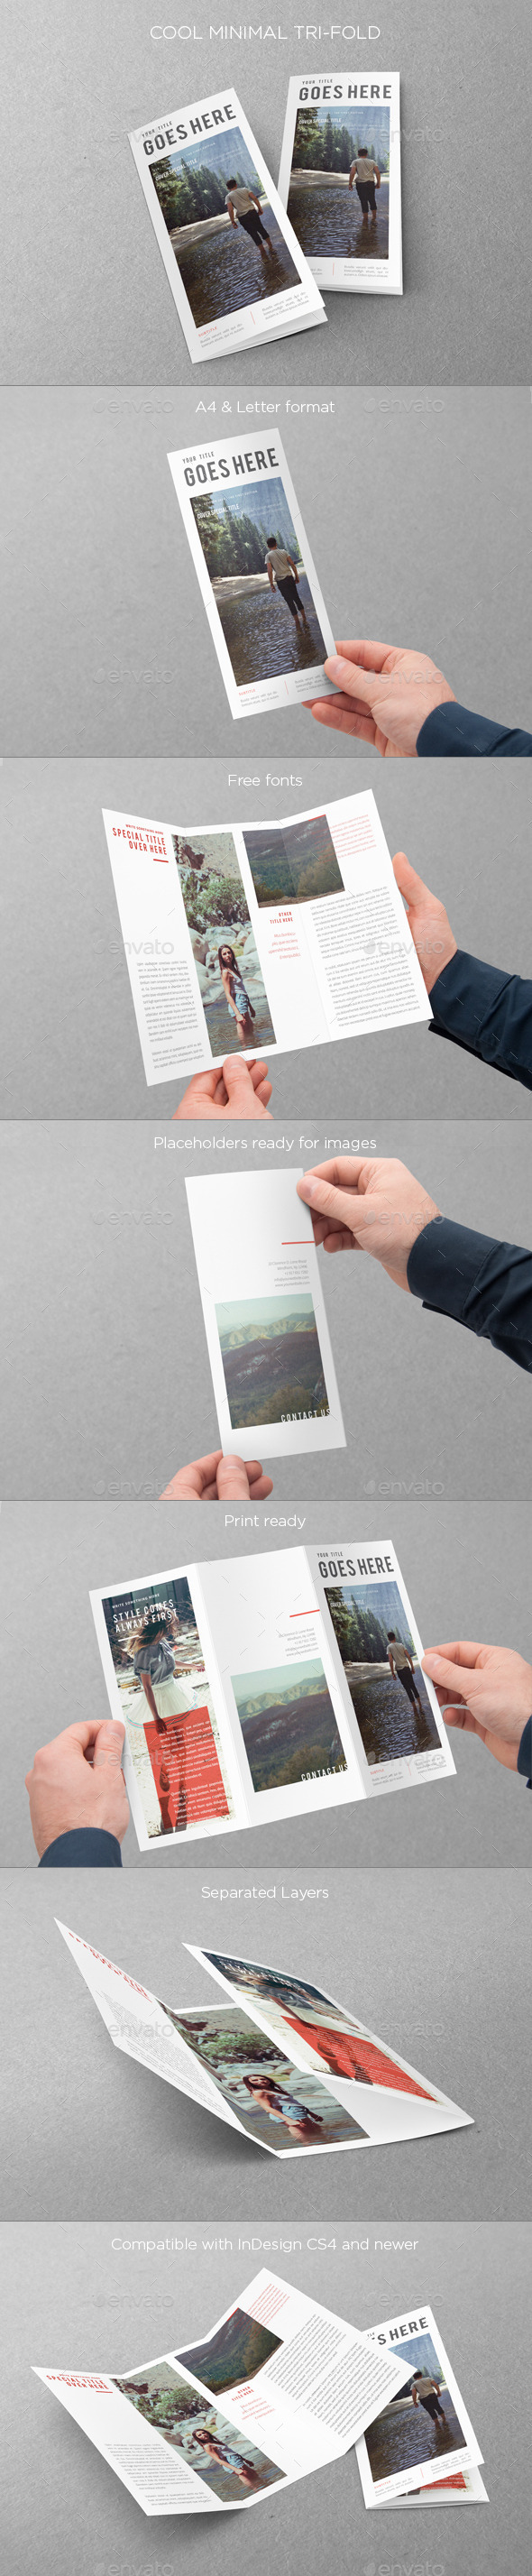 Cool Minimal Trifold - Brochures Print Templates